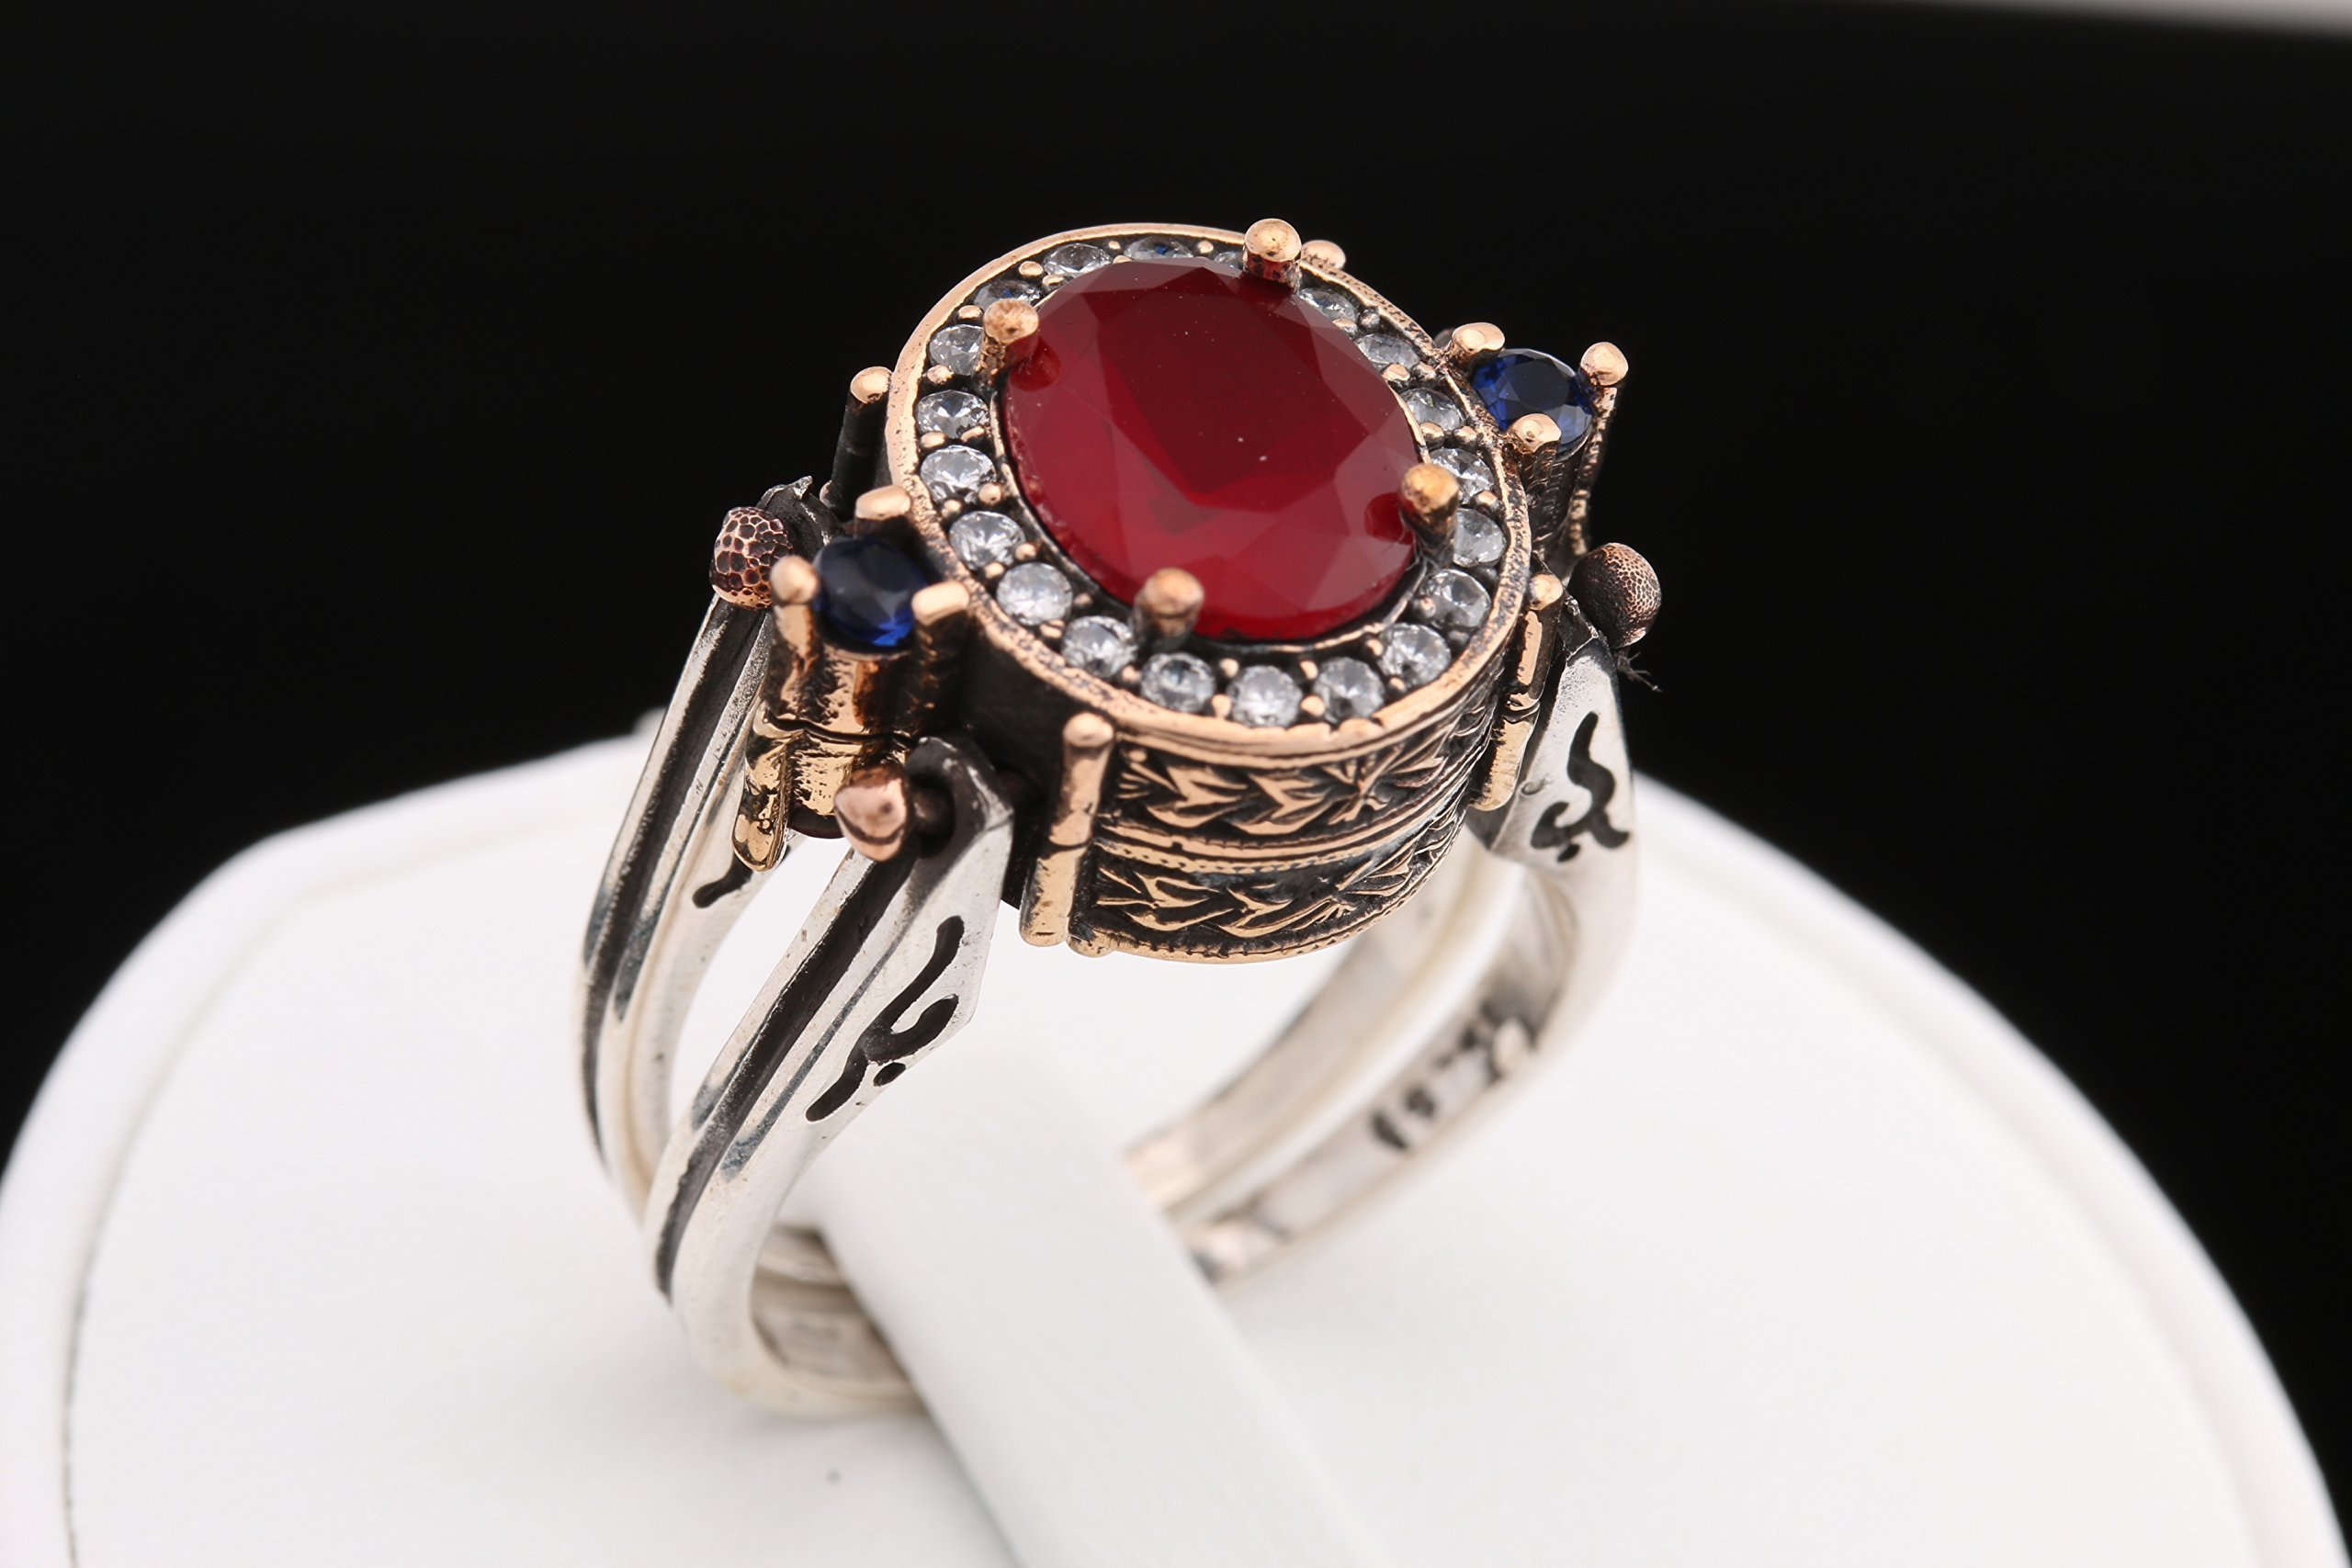 Turkish Handmade Reversible Oval Shape Sapphire Ruby Round Cut White Topaz 925 Sterling Silver Ring Size All